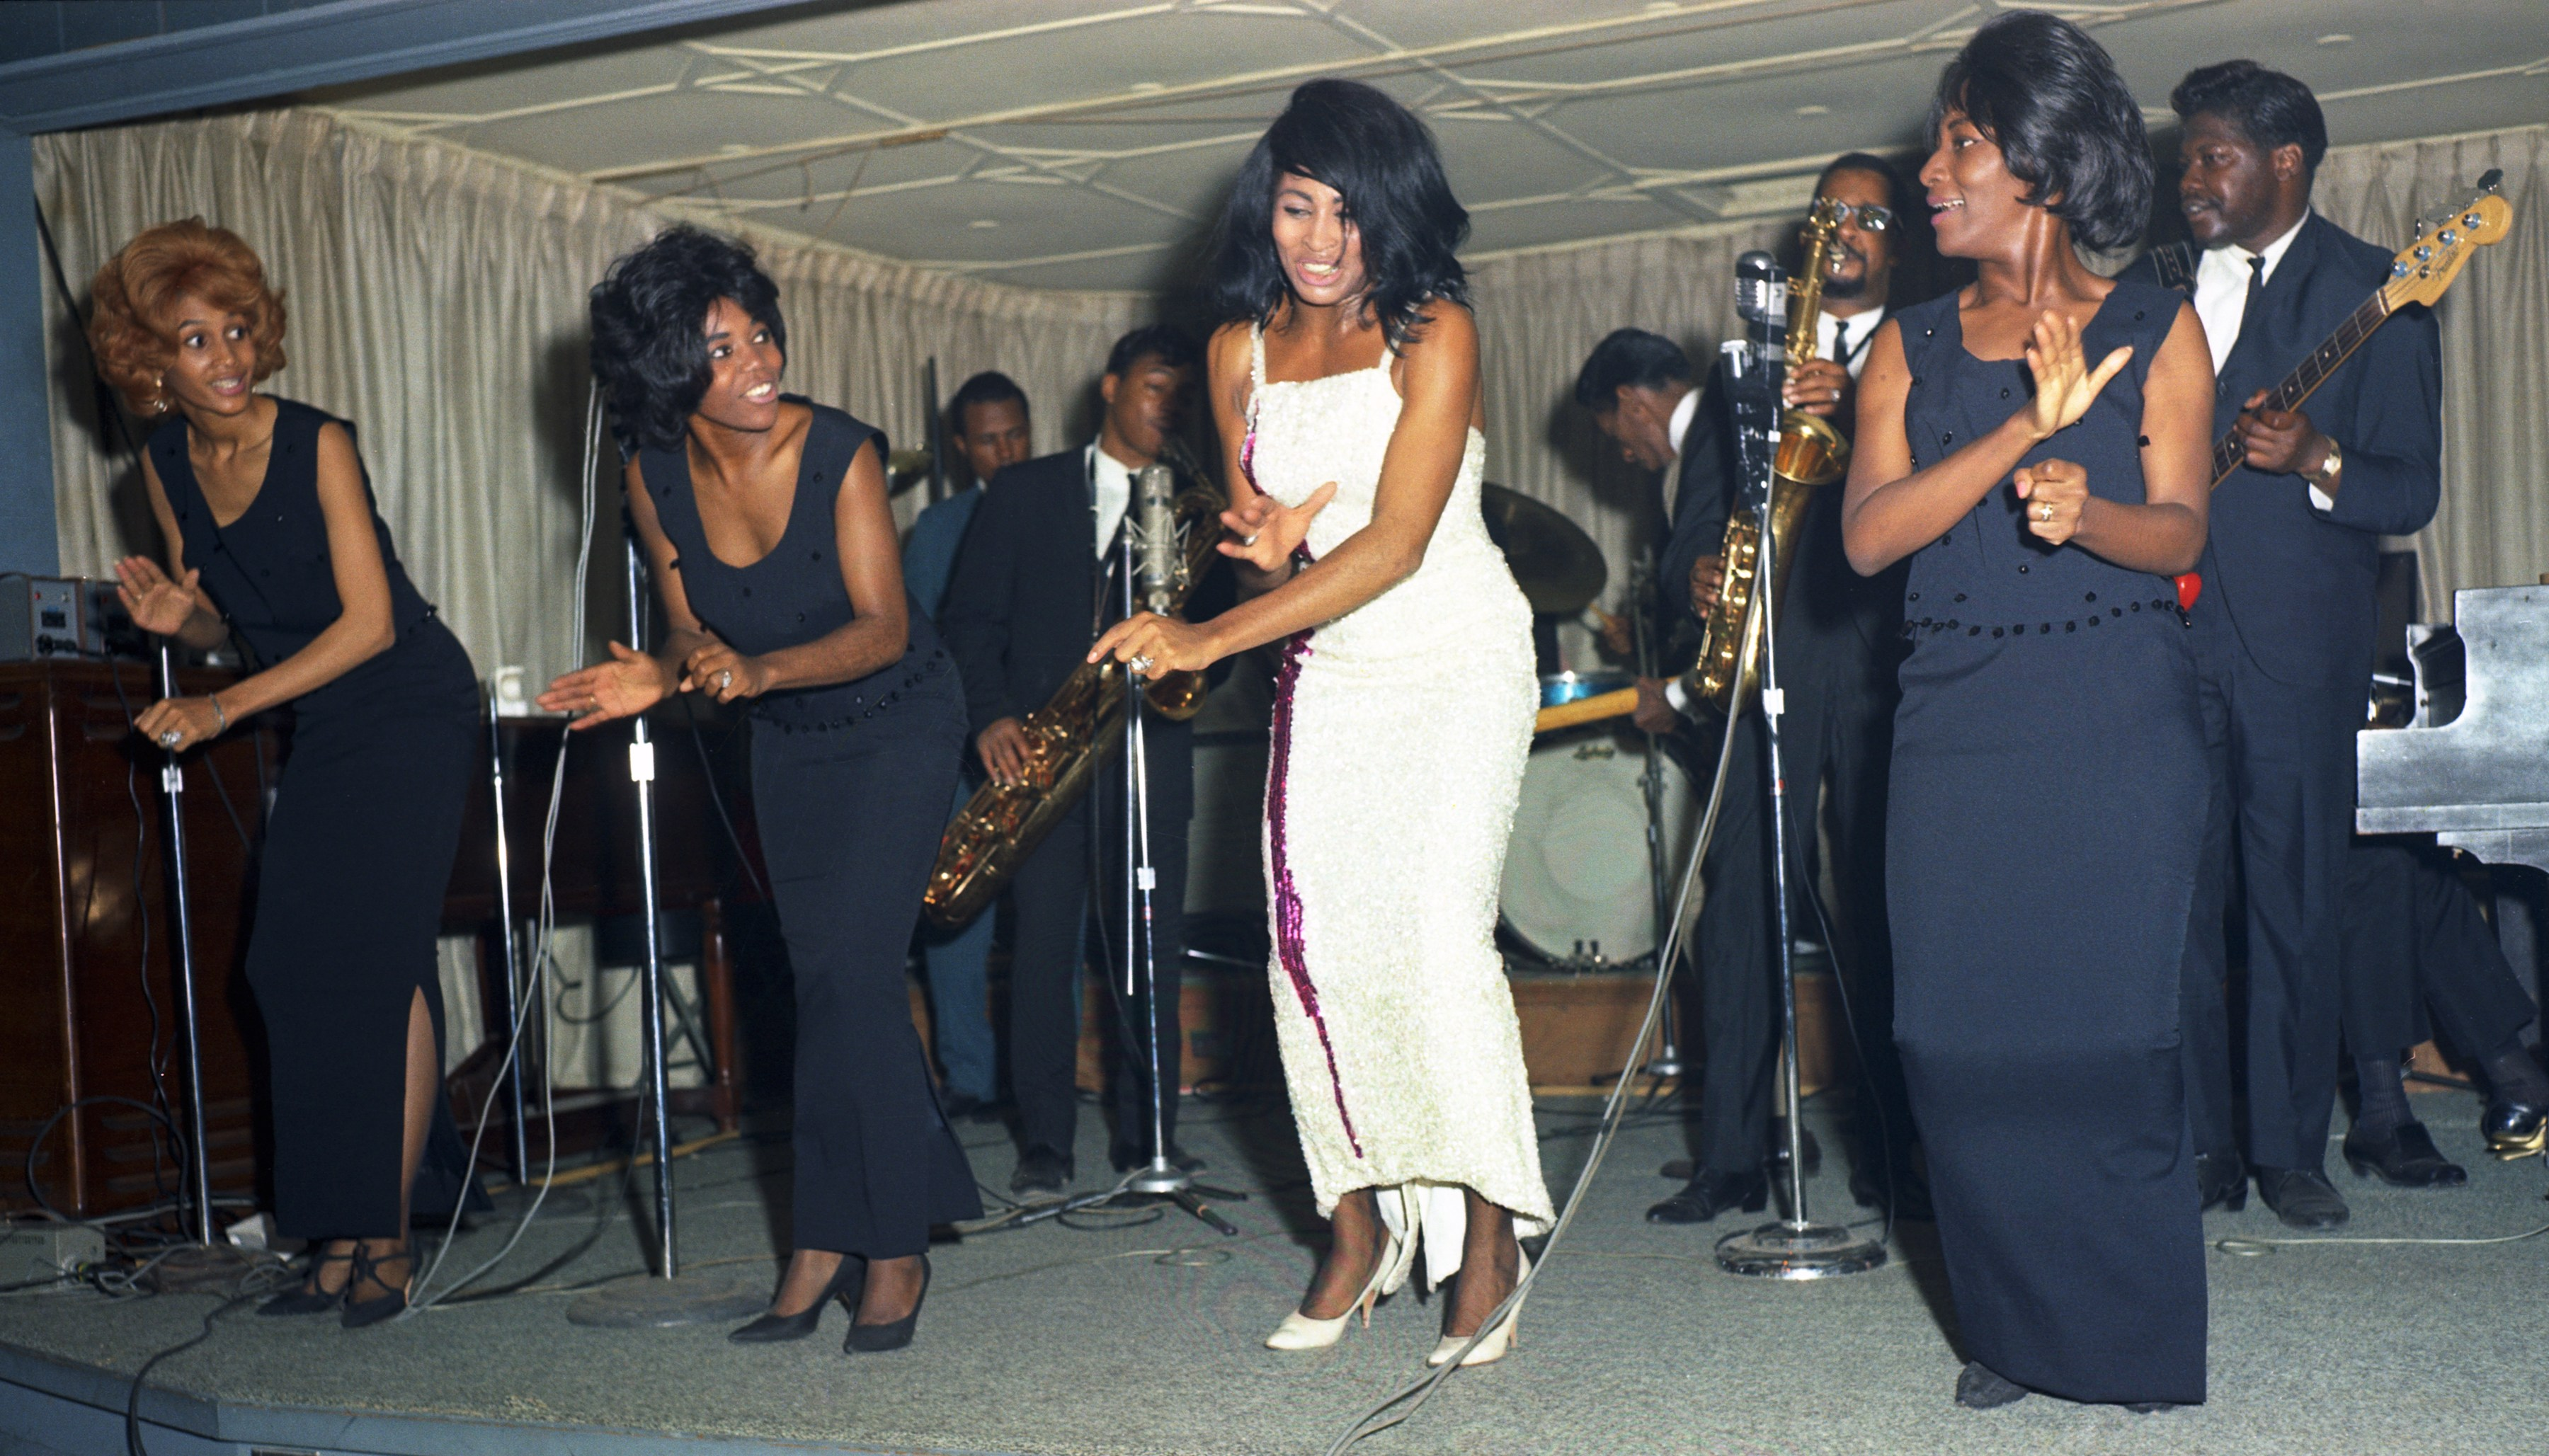 Ike & Tina Turner Revue Perform